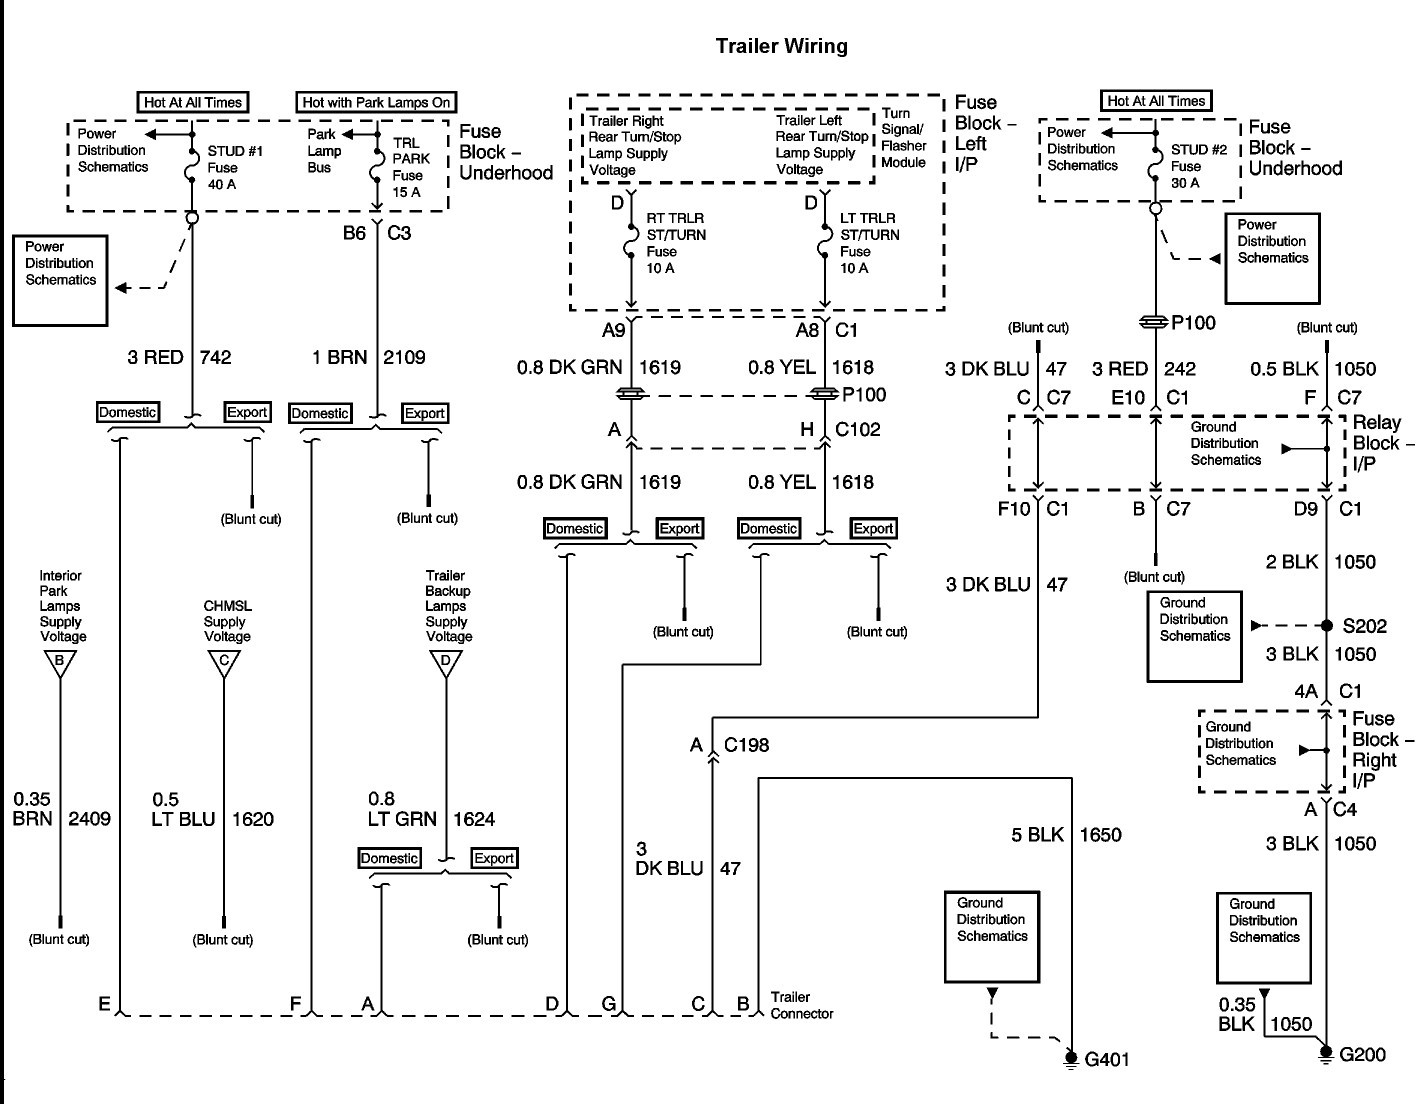 06 Avalanche Wiring Chart | Wiring Diagram on motor chart, operation chart, connectors chart, assembly chart, wheels chart, trim chart, wire chart, foundation chart, electrical chart, roof chart, housing chart, power chart, construction chart, design chart, maintenance chart, service chart, go chart, networking chart, valves chart, coil chart,